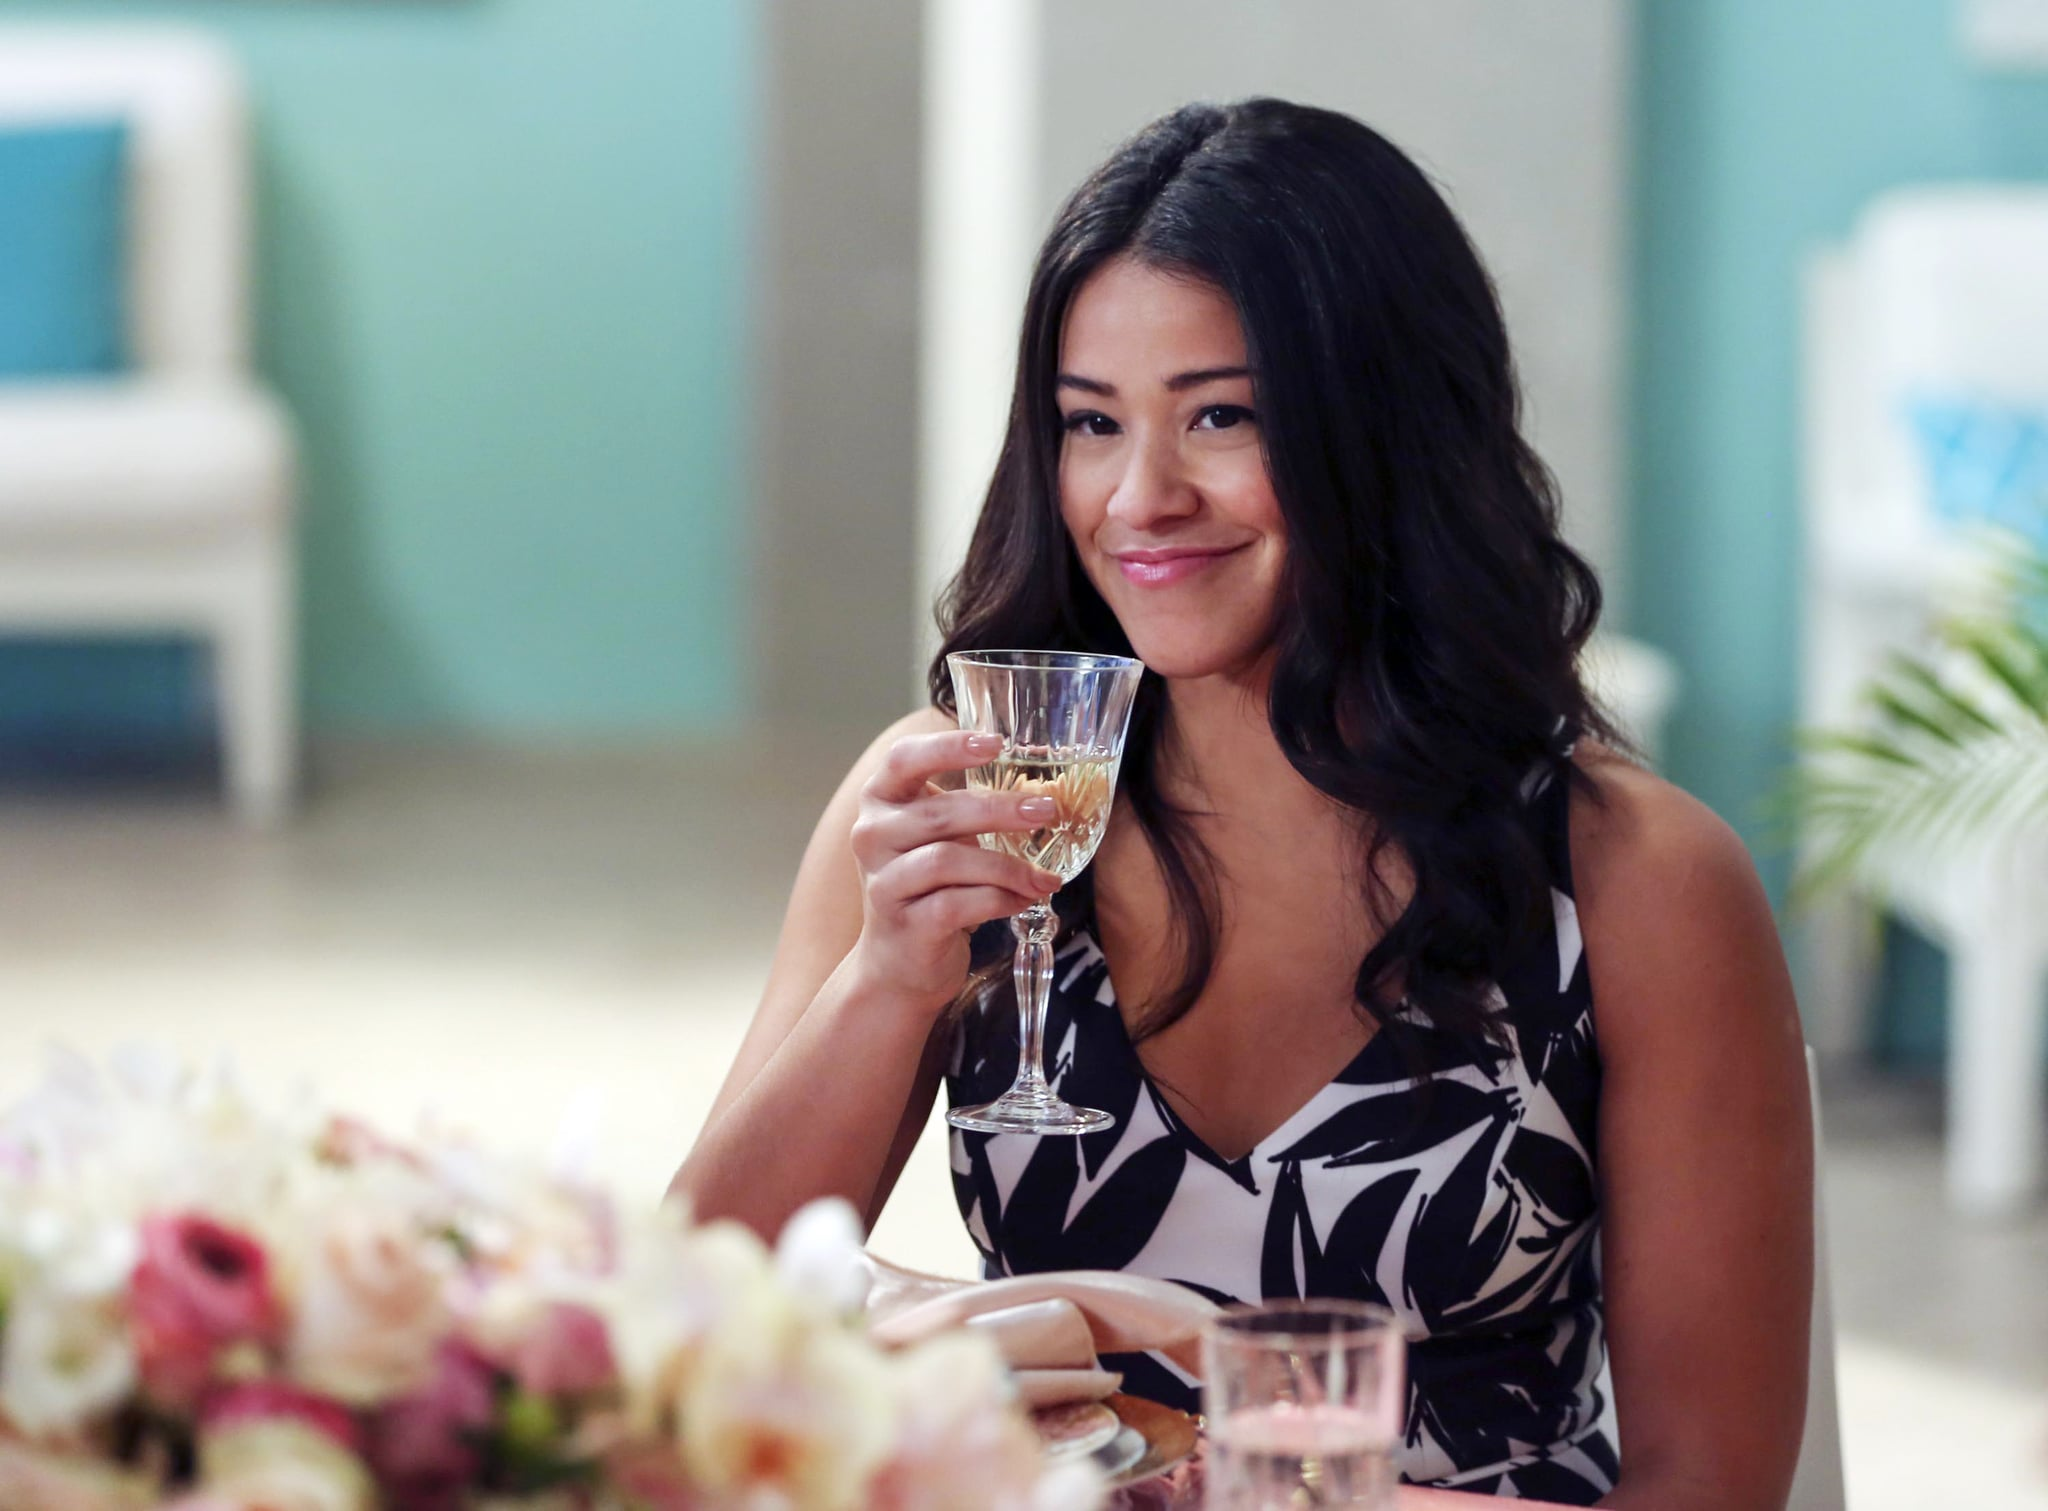 JANE THE VIRGIN, Gina Rodriguez, 'Chapter Thirty-Four', (Season 2, ep. 212, aired Feb. 22, 2016). photo: Scott Everett White / The CW / courtesy Everett Collection